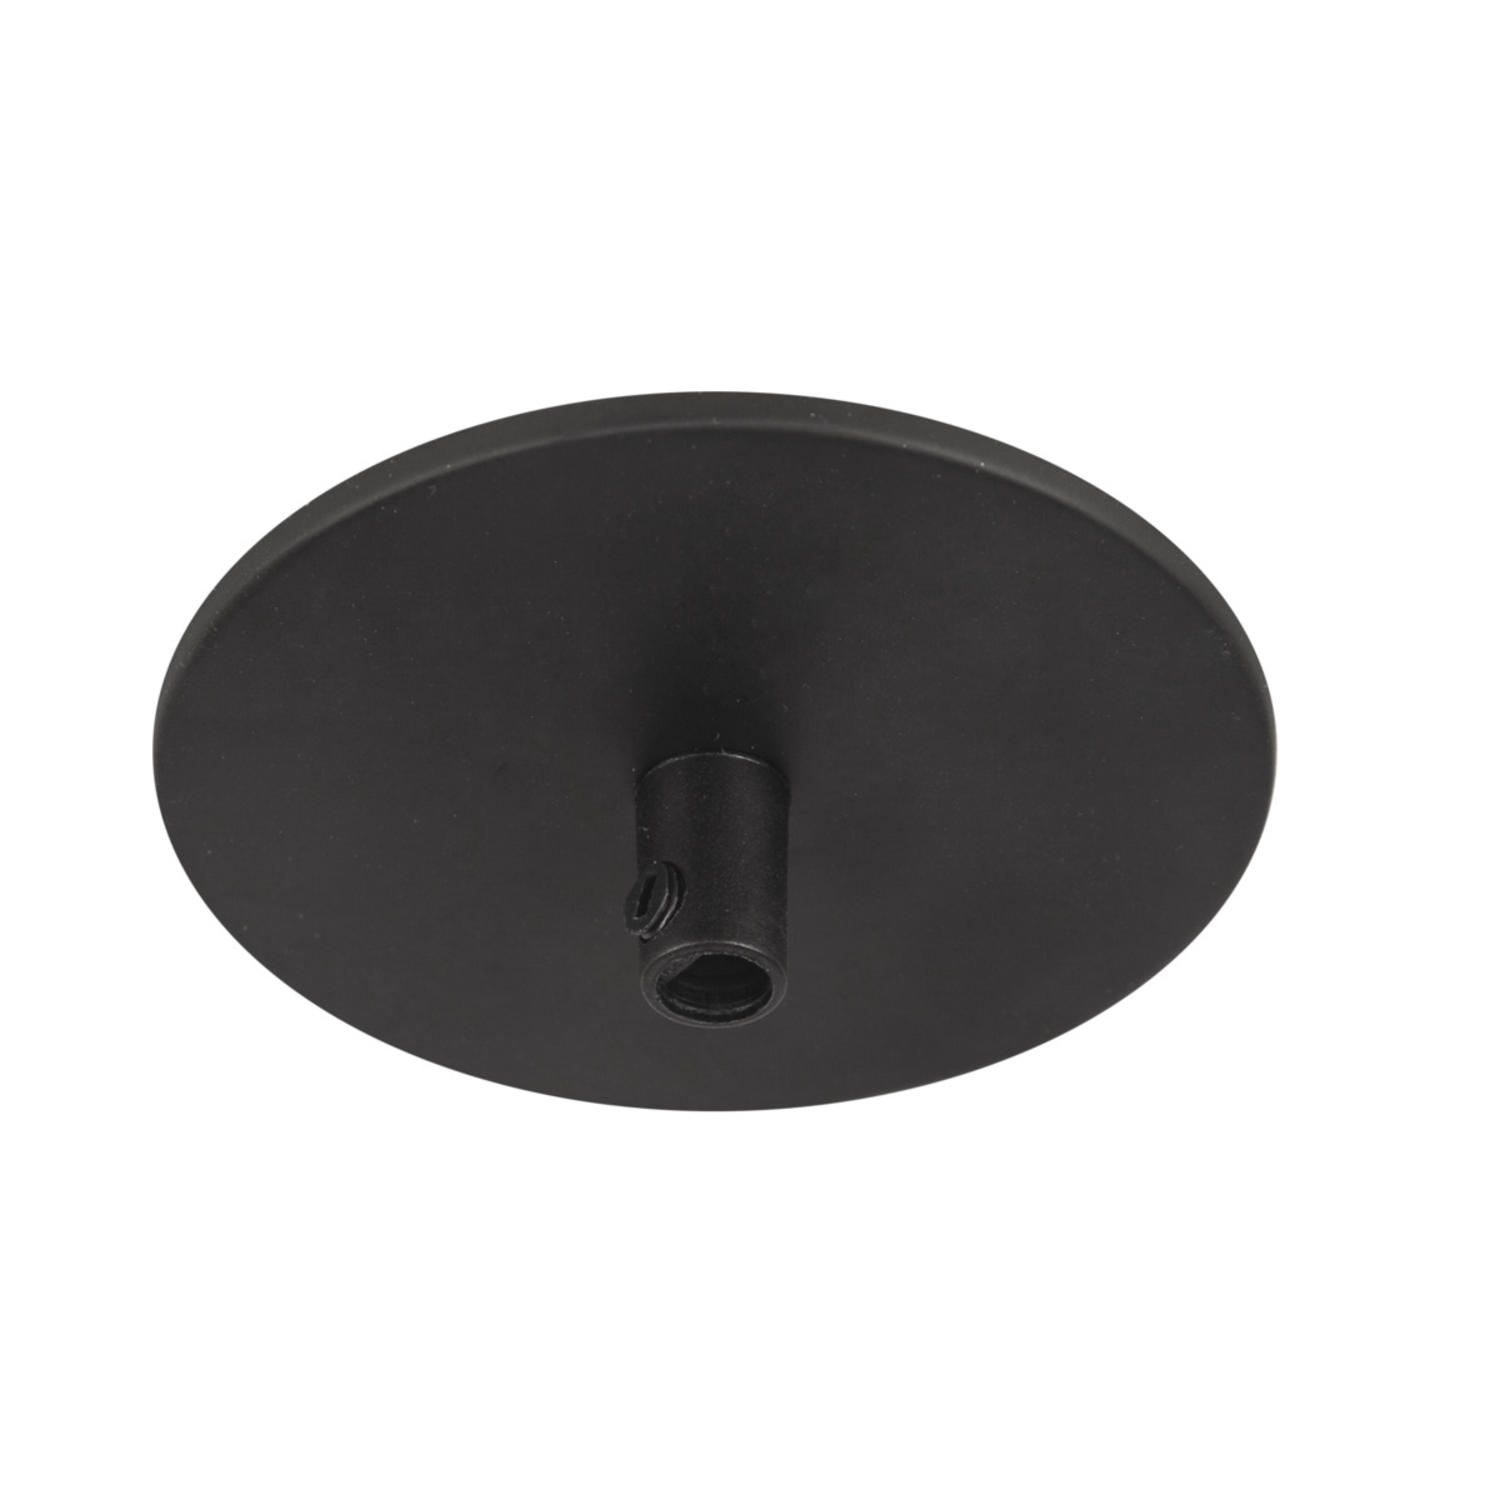 Ceiling cup recessed w. spring Black